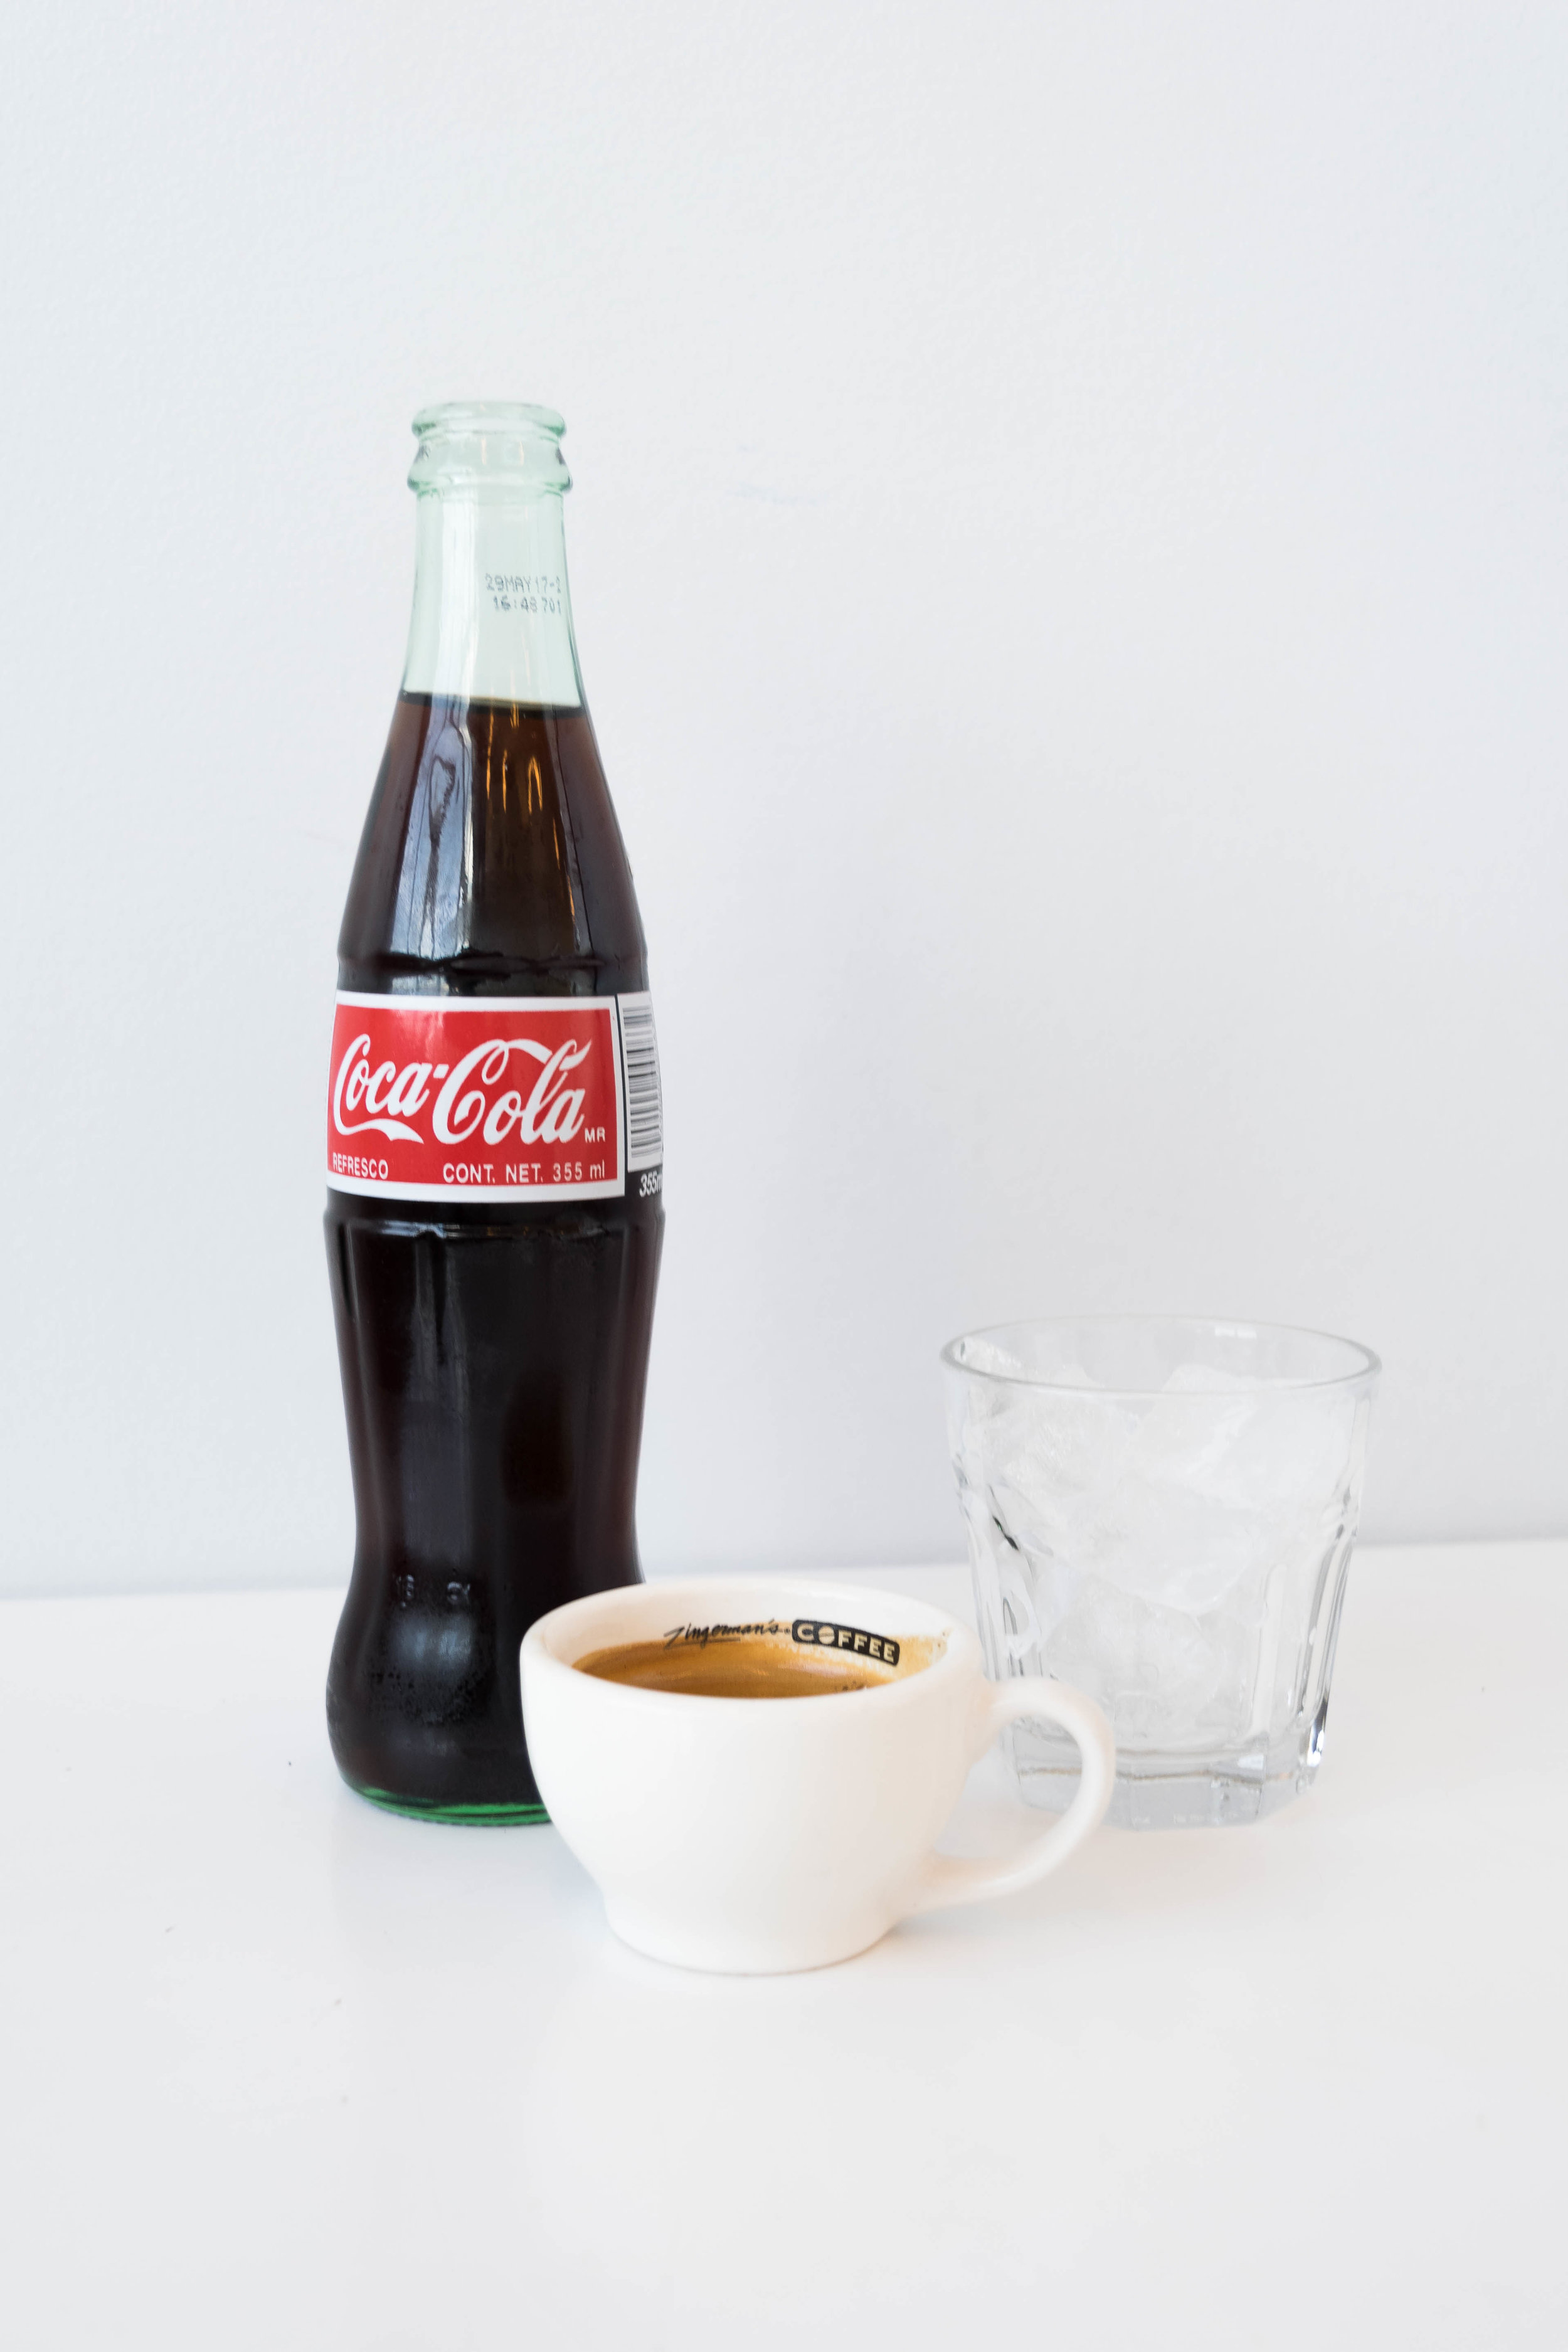 The most unique option is a Coca-Cola over ice with a shot of espresso. I was hesitant to try this but our East Lansing gelatista insisted that I would love it. She was right! It was the perfect combination of the tanginess of Coca-Cola and the espresso aftertaste. It takes a brave person to try it, but is 100% worth it.